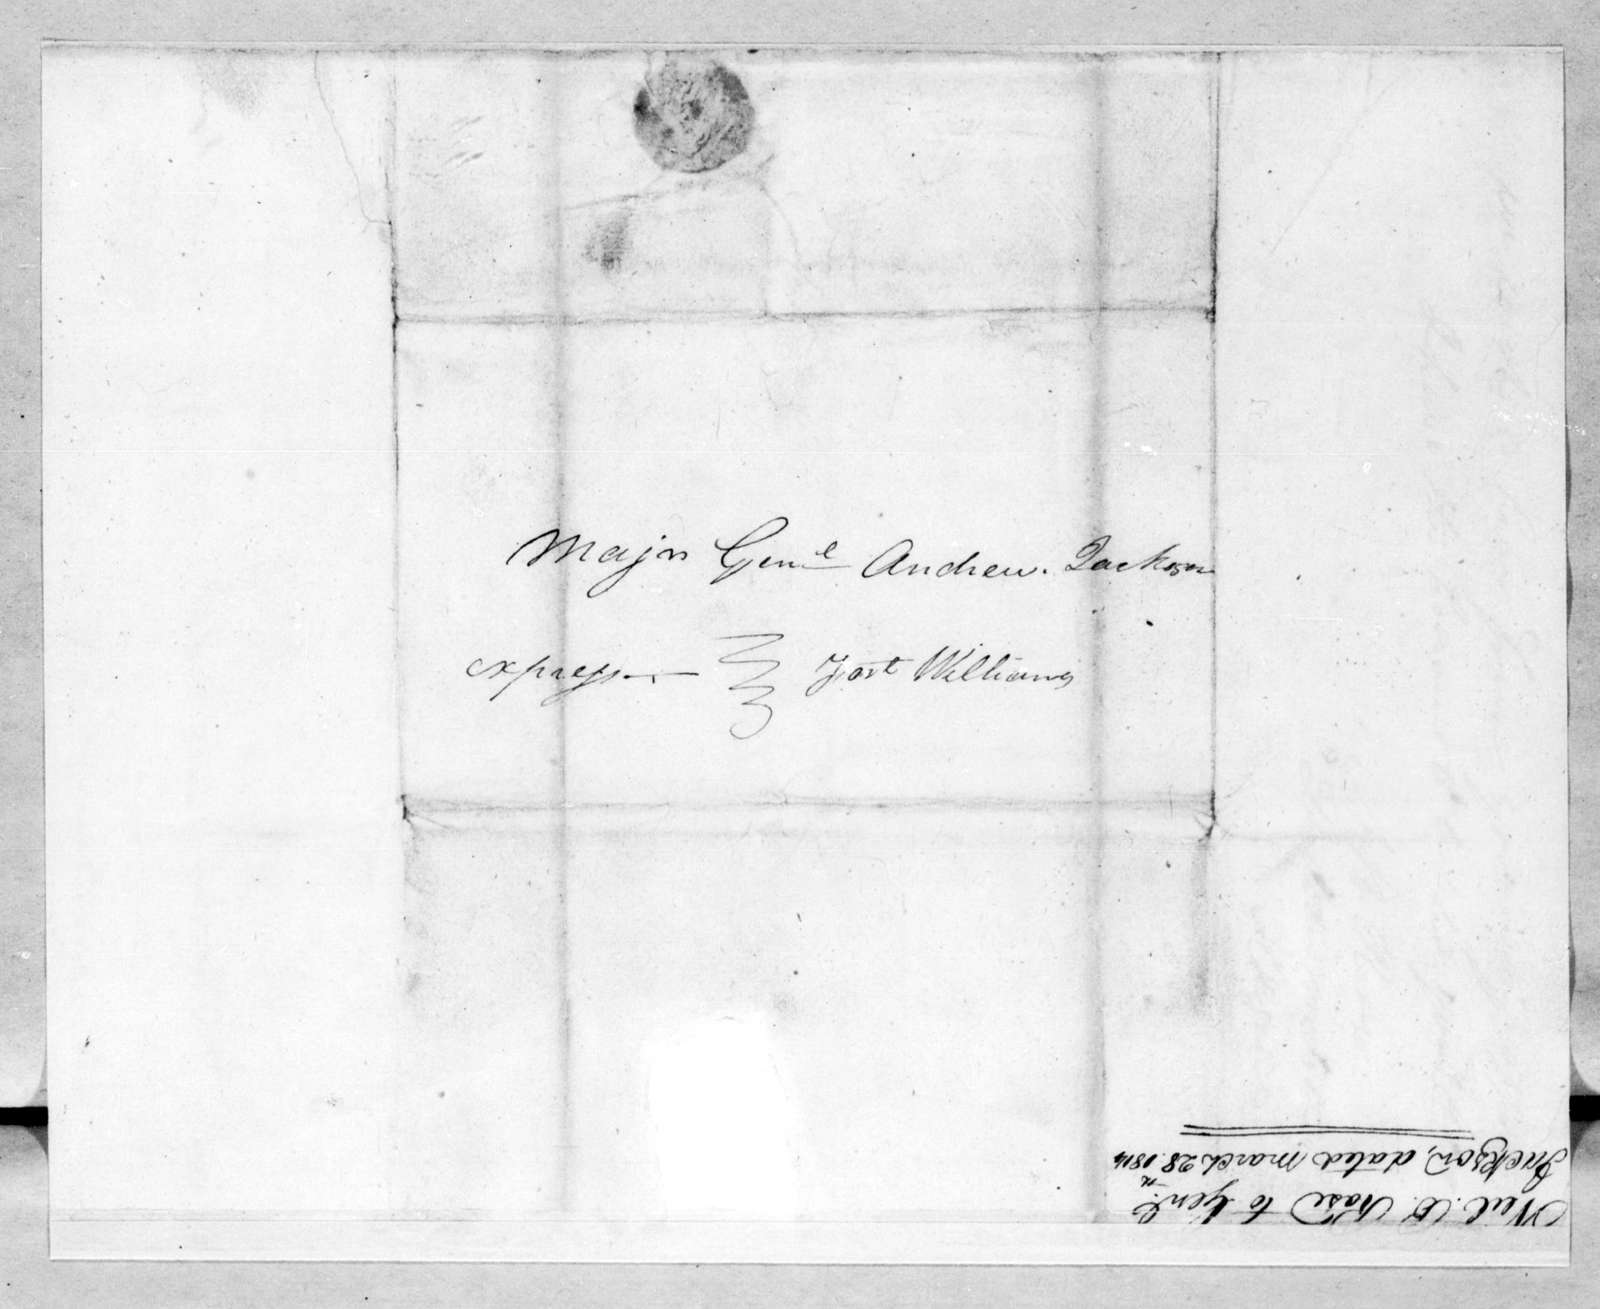 Neil B. Rose to Andrew Jackson, March 28, 1814